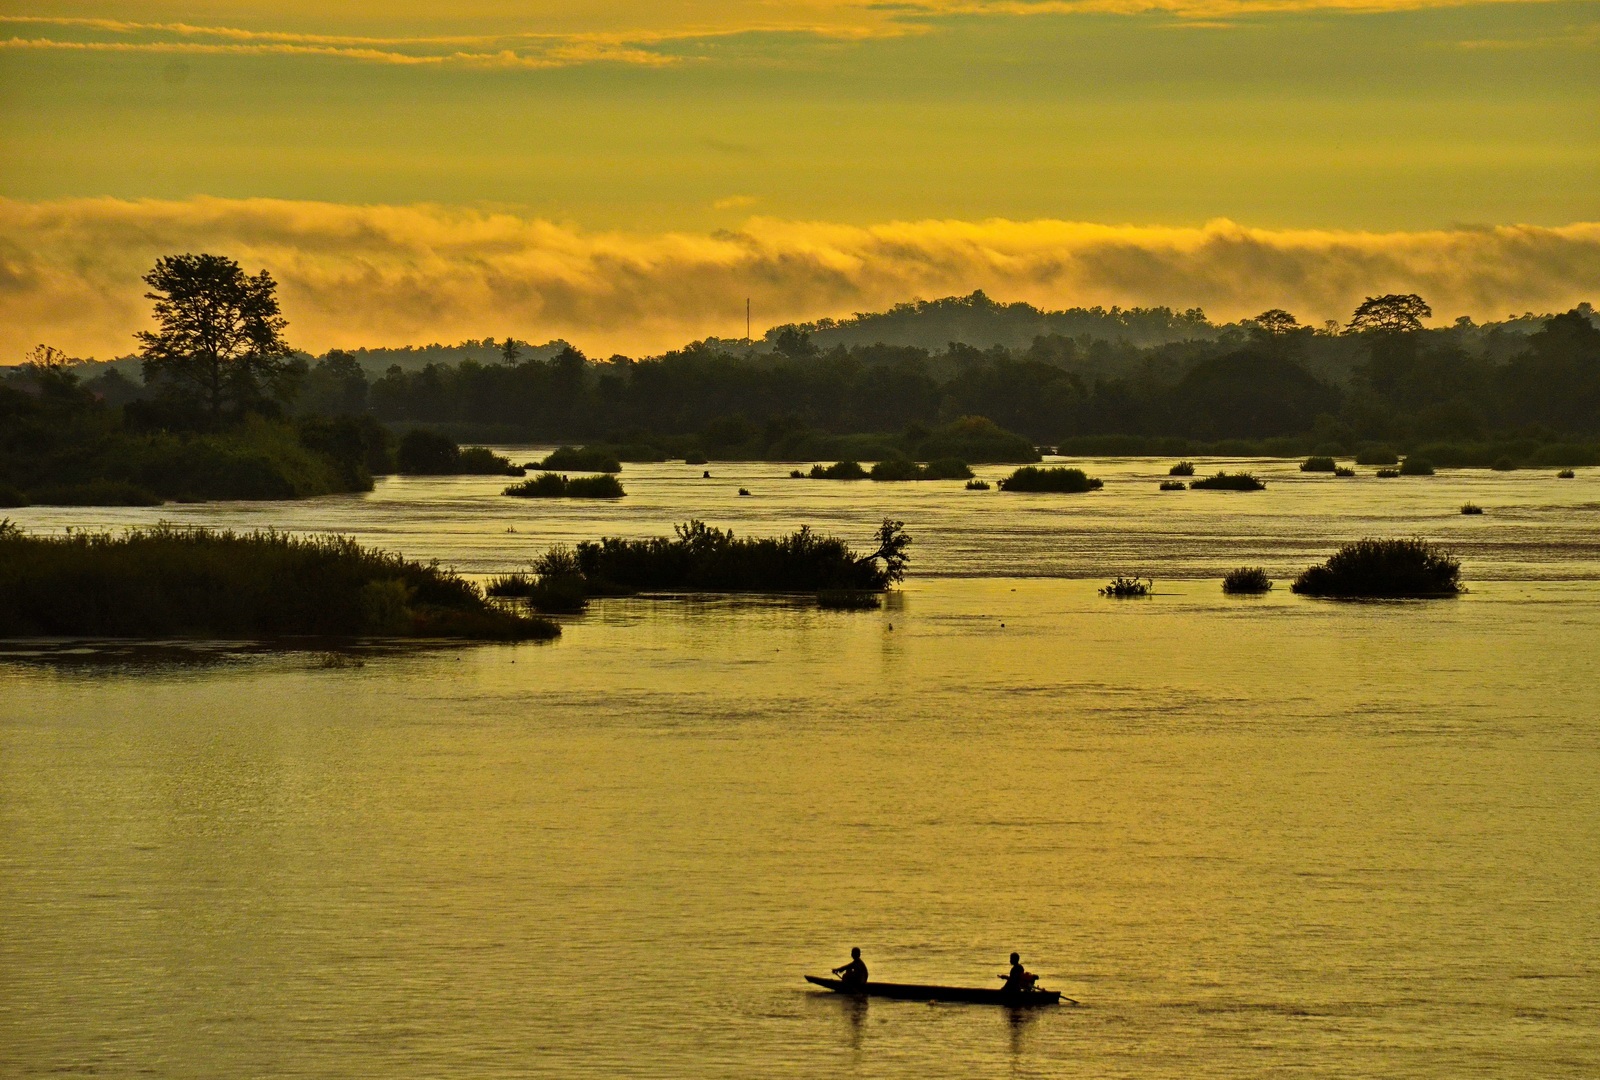 Laos, sunrise from our balcony on Done Khong